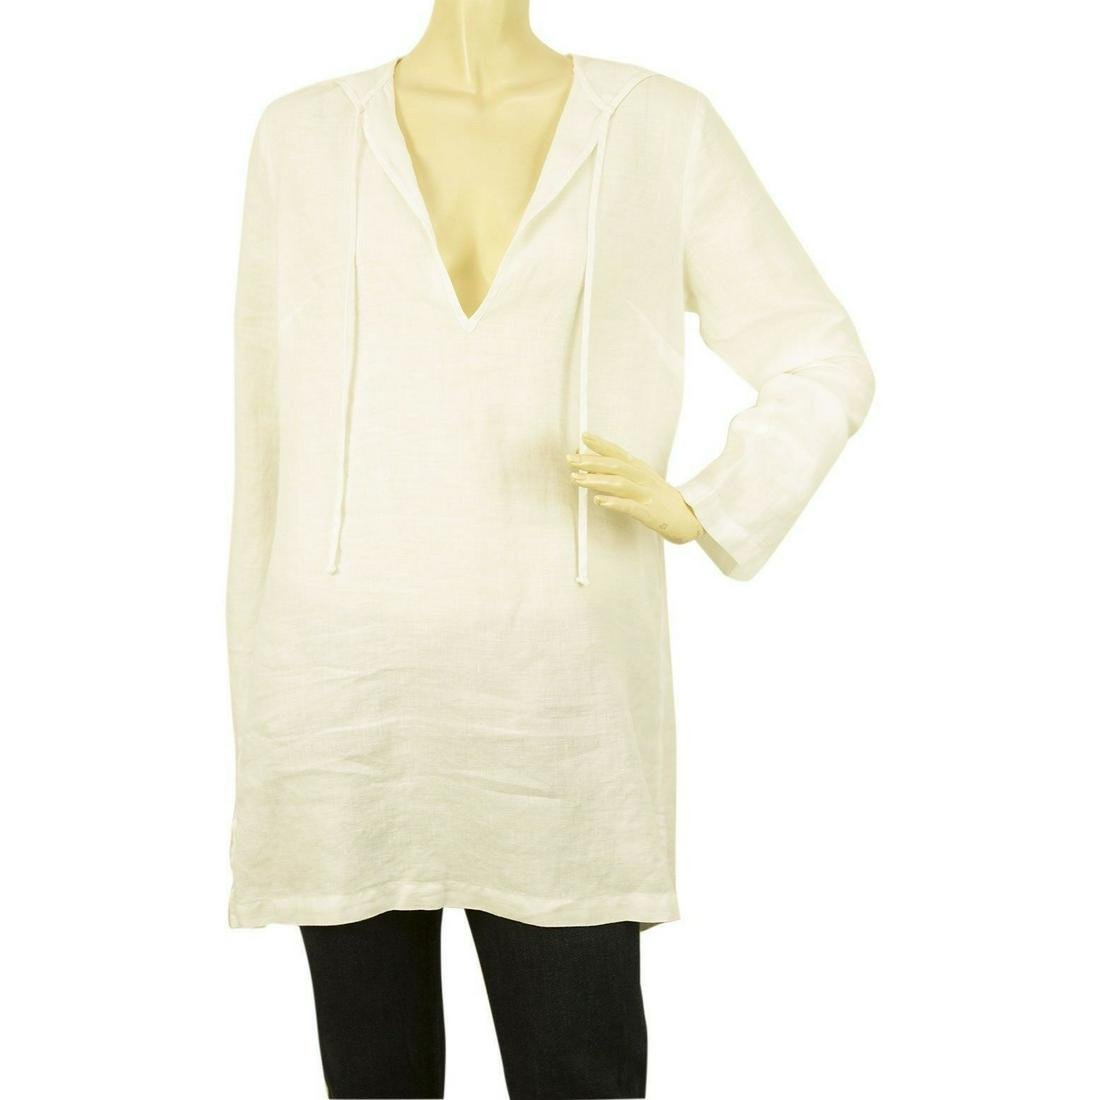 Juicy Couture White 100% Linen Hooded Tunic Blouse Long